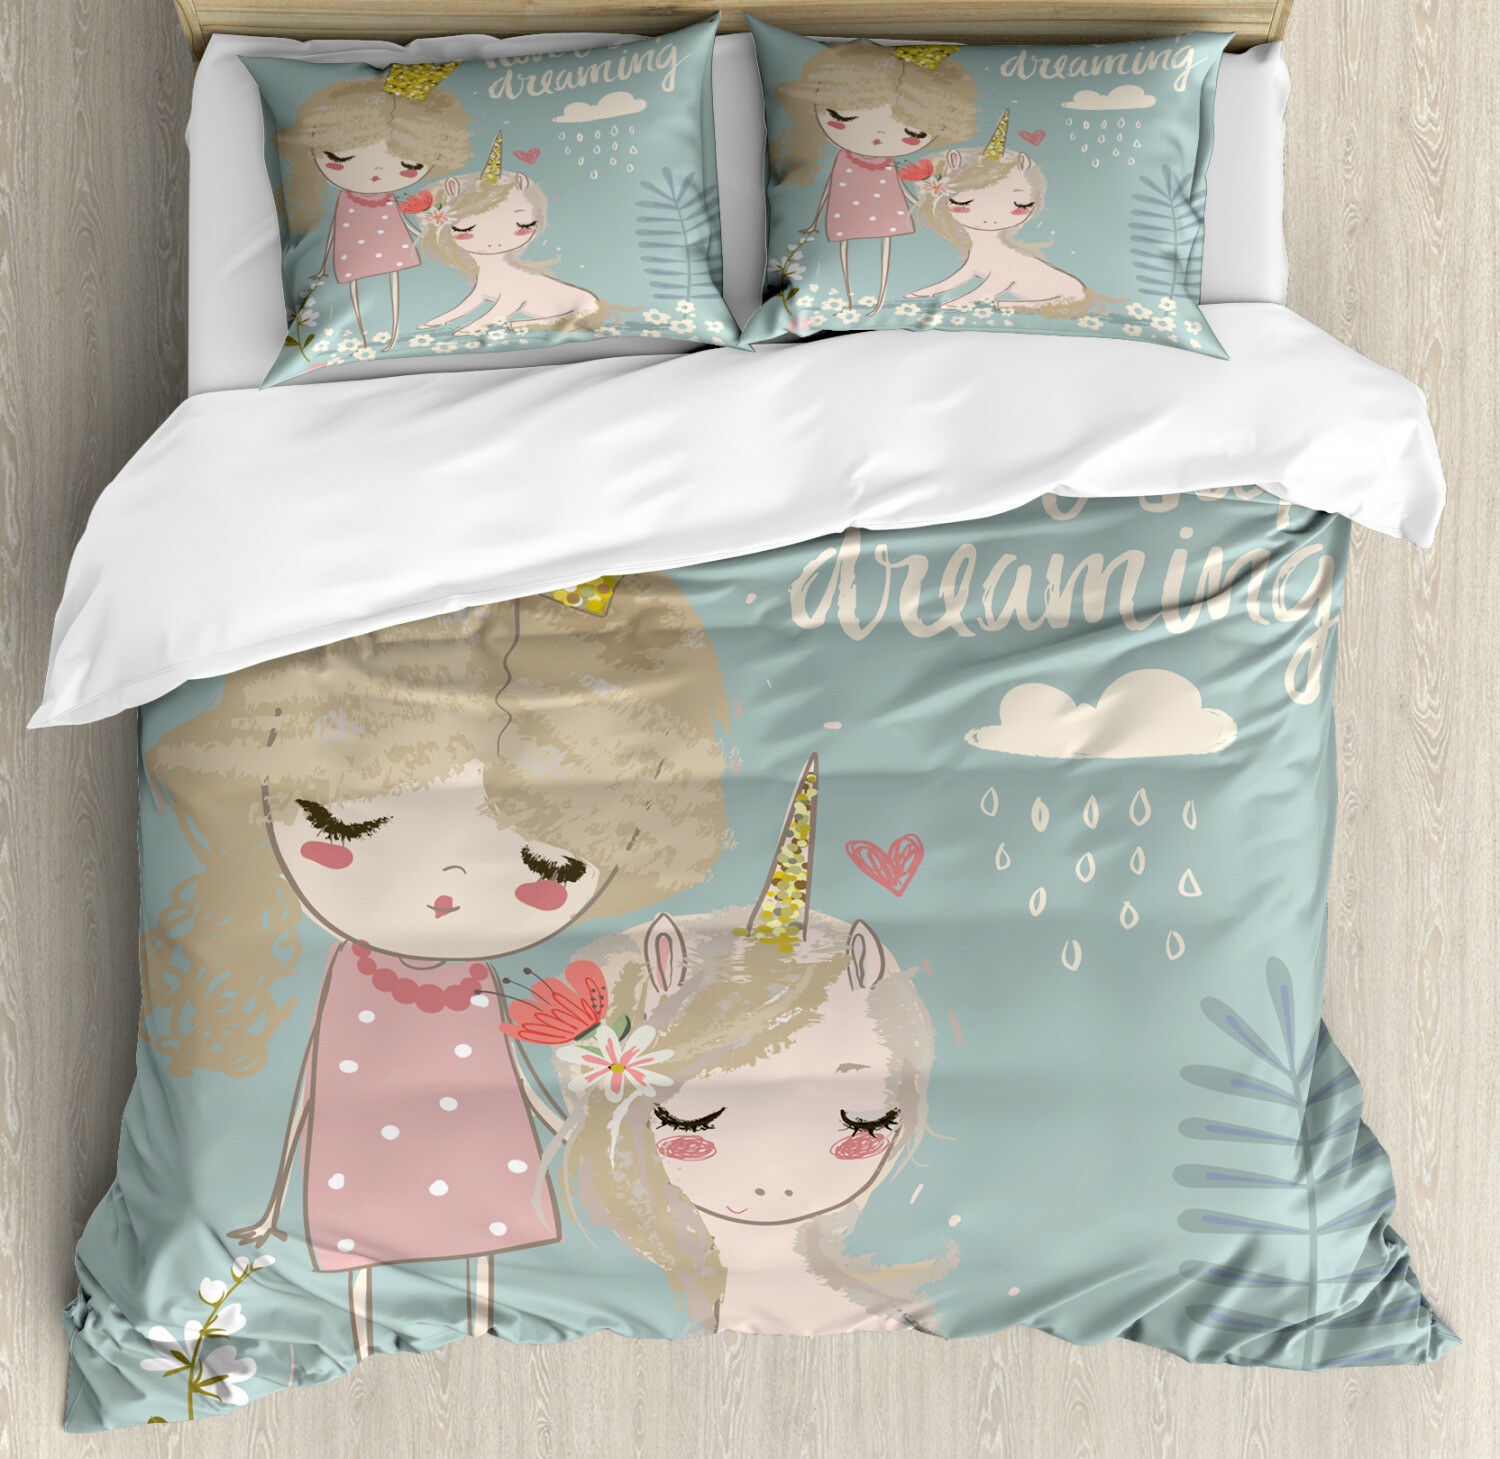 Quote Duvet Cover Set with Pillow Shams Princess Girl Unicorn Print